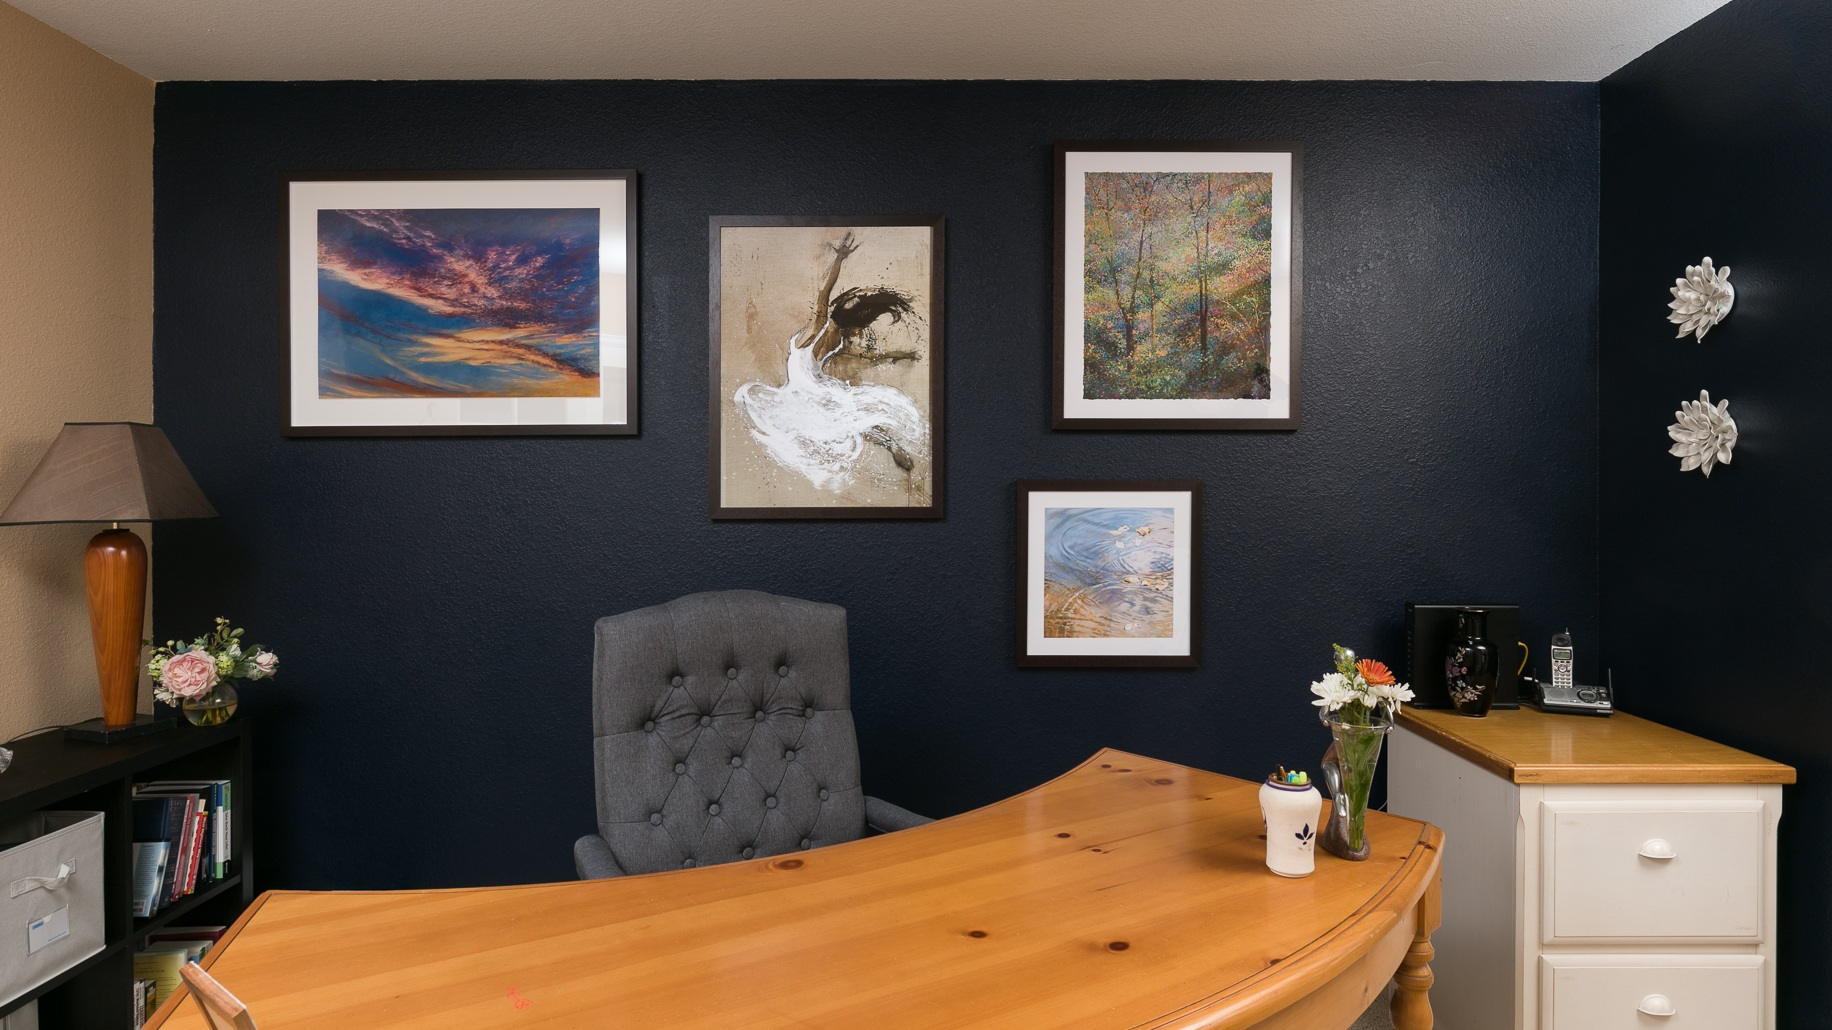 Home Office, Denver CO., After,. Artist- Laura Guese (far left), Grand Image prints (remaining pieces)